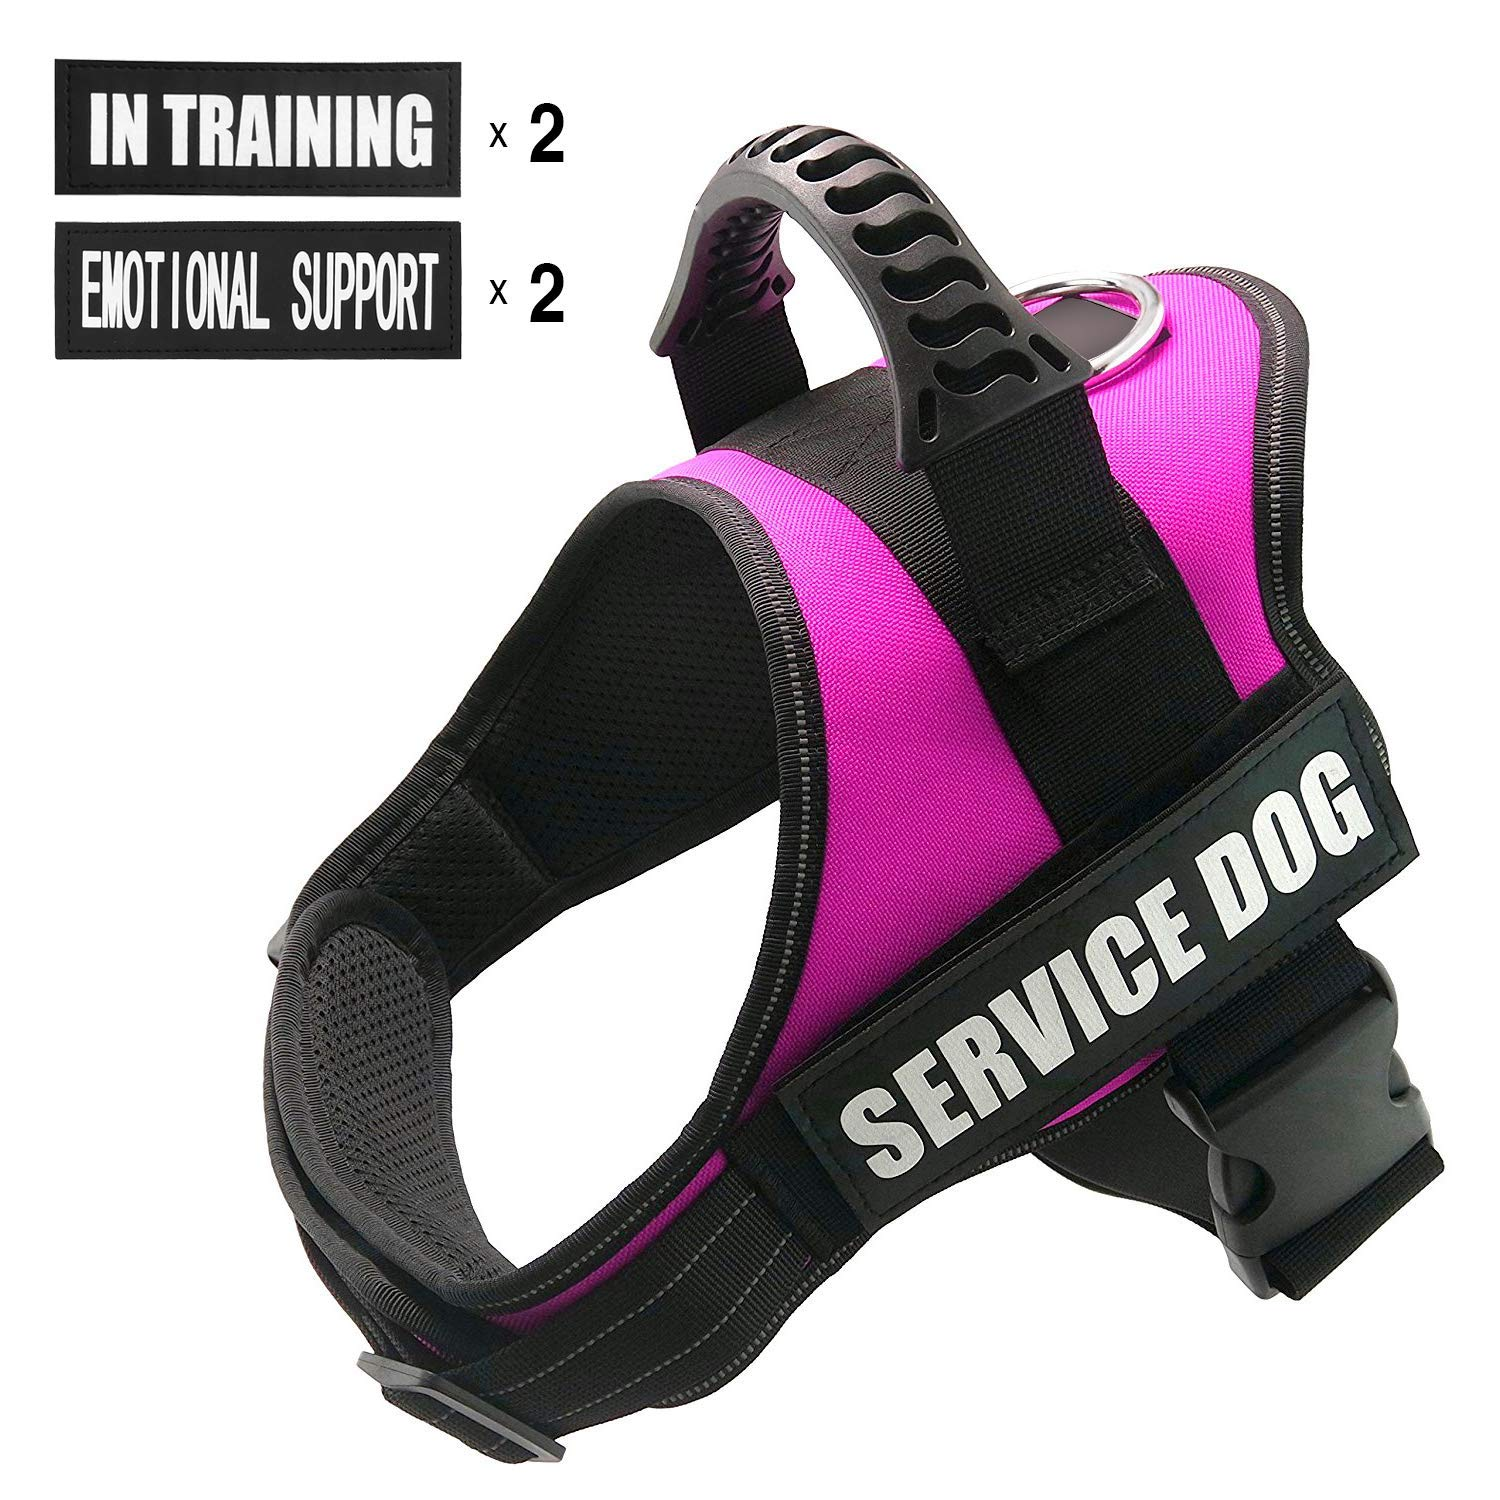 FAYOGOO Dog Vest Harness for Service Dogs, Comfortable Padded Dog Training Vest with Reflective Patches and Handle for Large Medium Small Dogs (Medium: Chest 24-32'' Neck 20-26'', Pink)